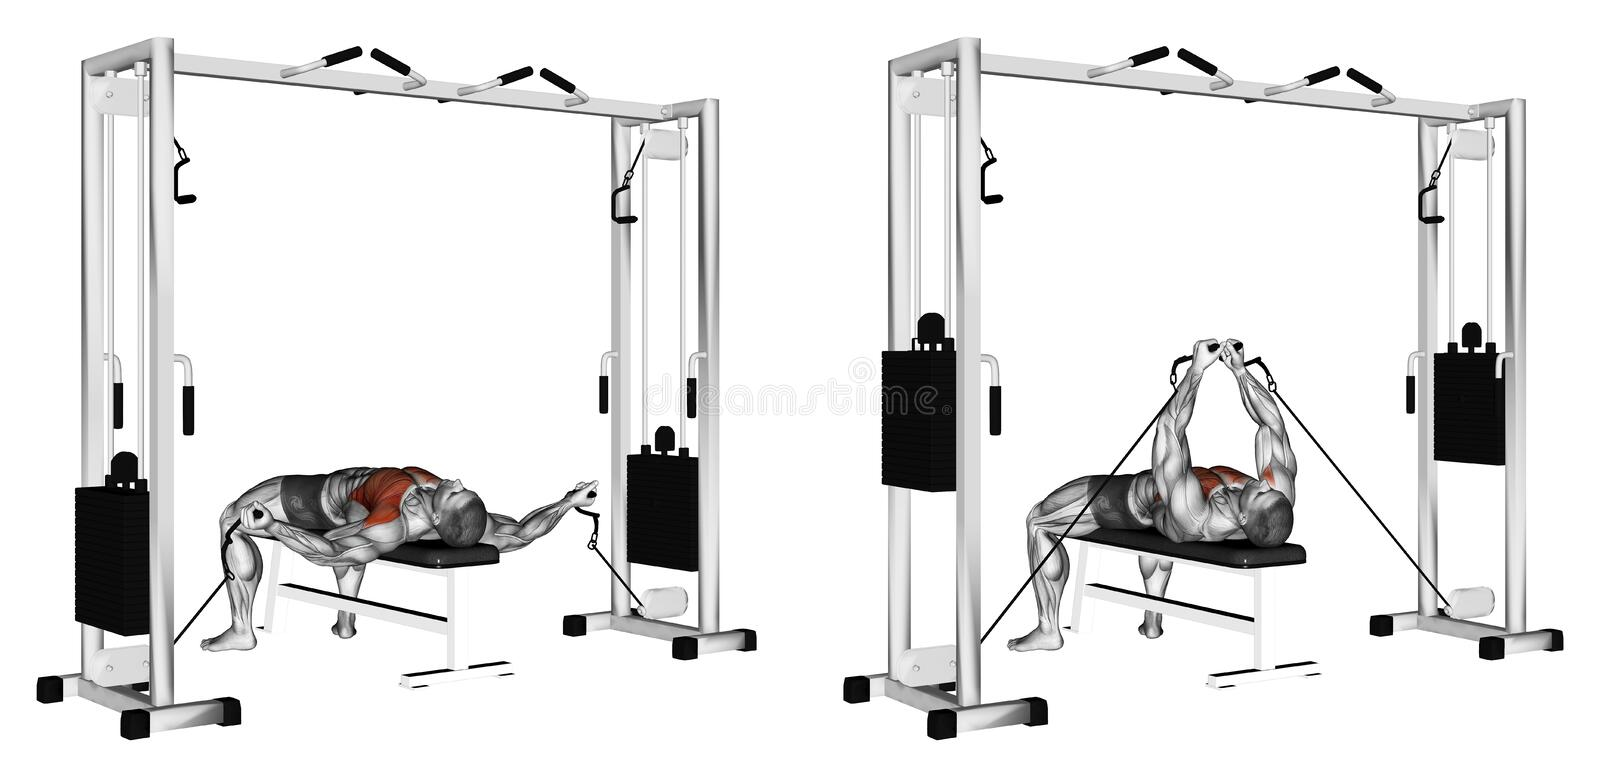 Exercising. Reduction of arms to lower block. Reduction of arms to lower block. Exercising for bodybuilding Target muscles are marked in red. Initial and final royalty free illustration